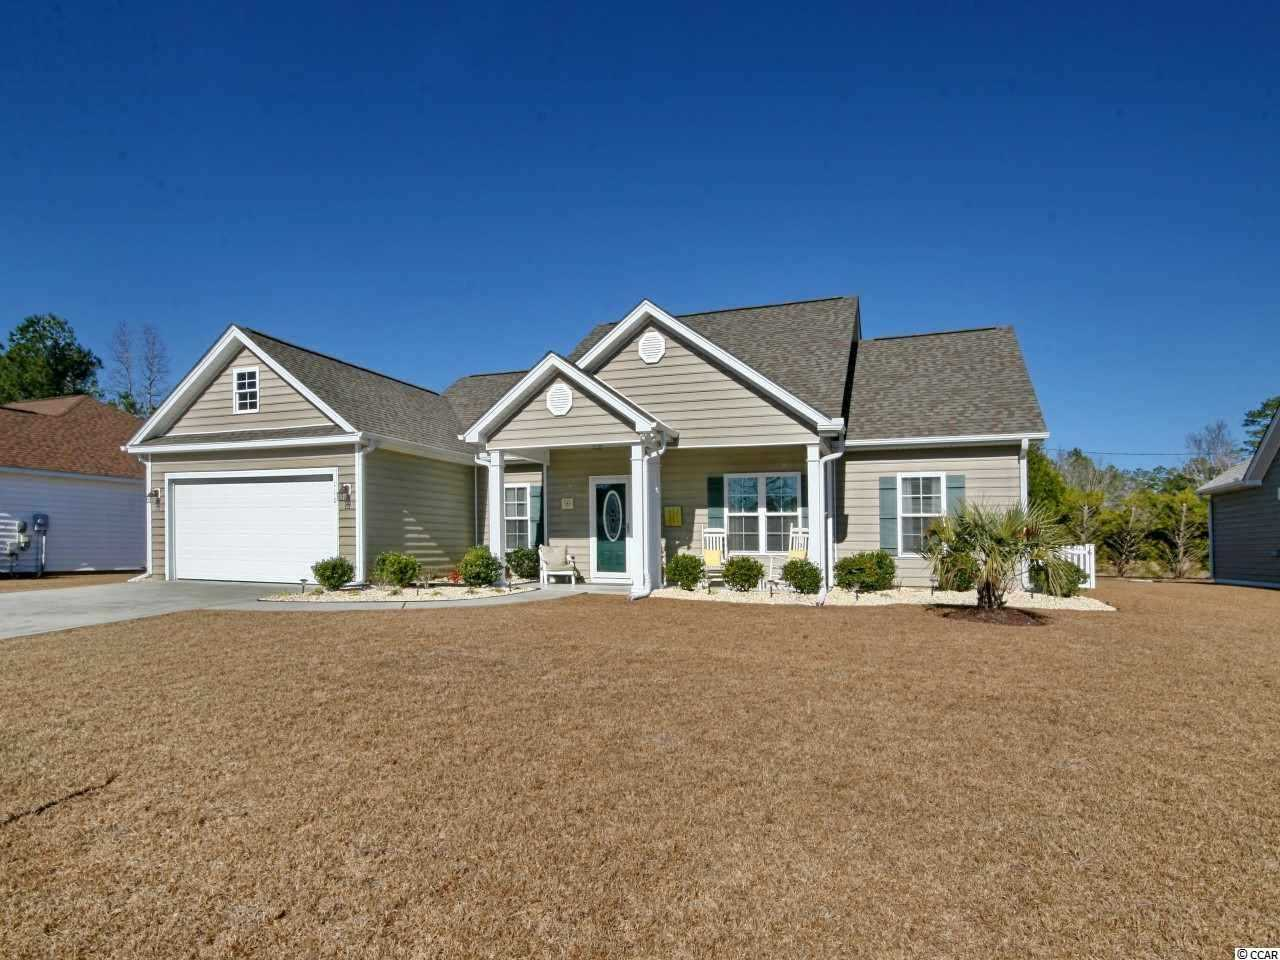 110 Grier Crossing Dr Conway, SC 29526 | MLS 1800762 Photo 1